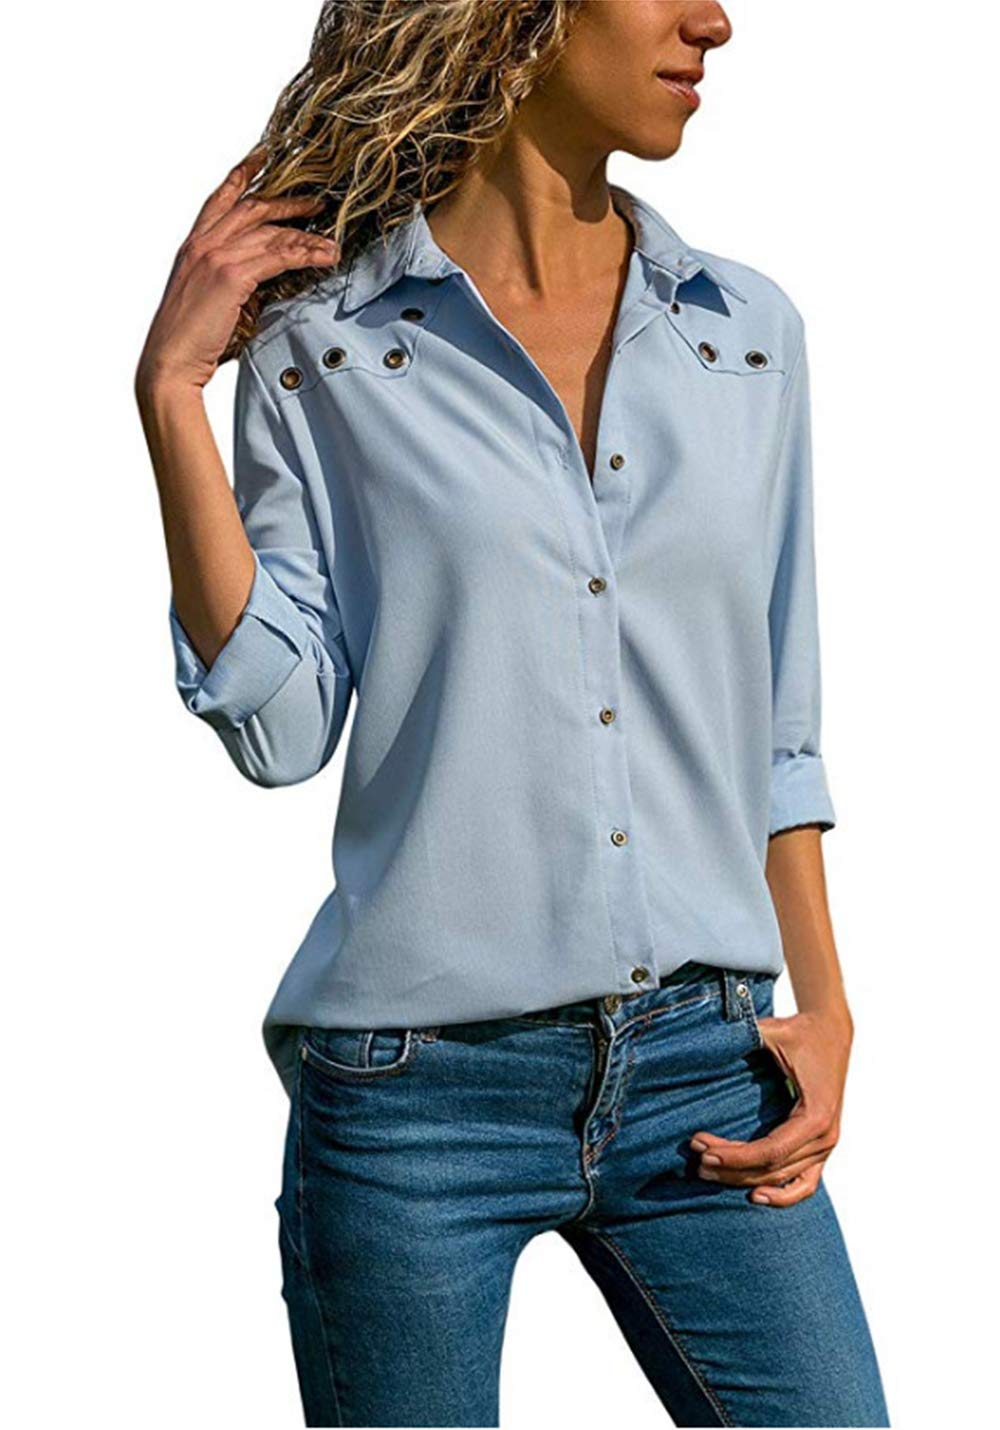 CAIYING Women's Solid Long Sleeves V Neck Button Down Shirts Blouses Tops